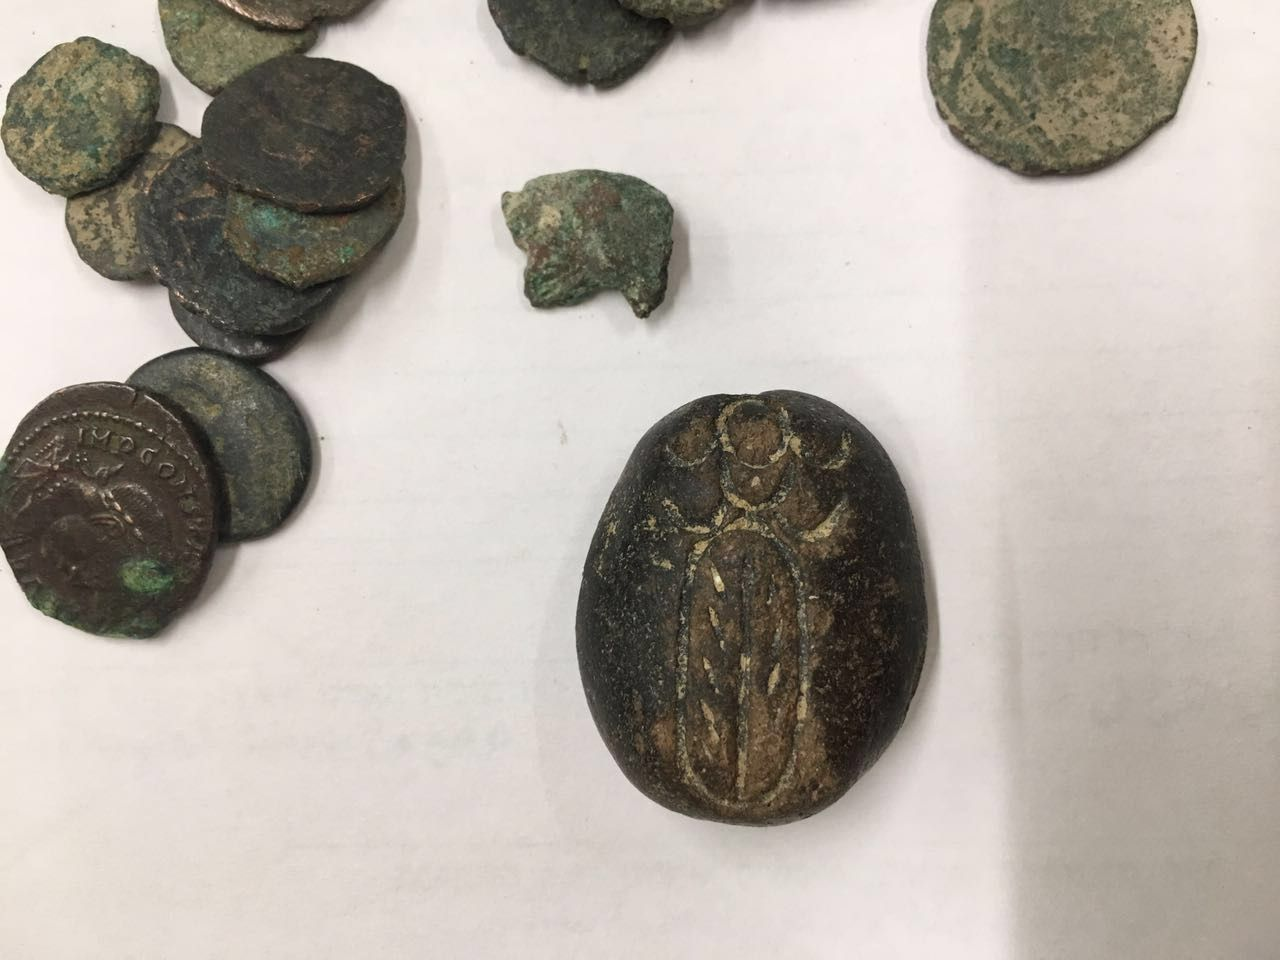 Detail of some of the 53 coins a West bank resident tried to smuggle into Israel from Jordan